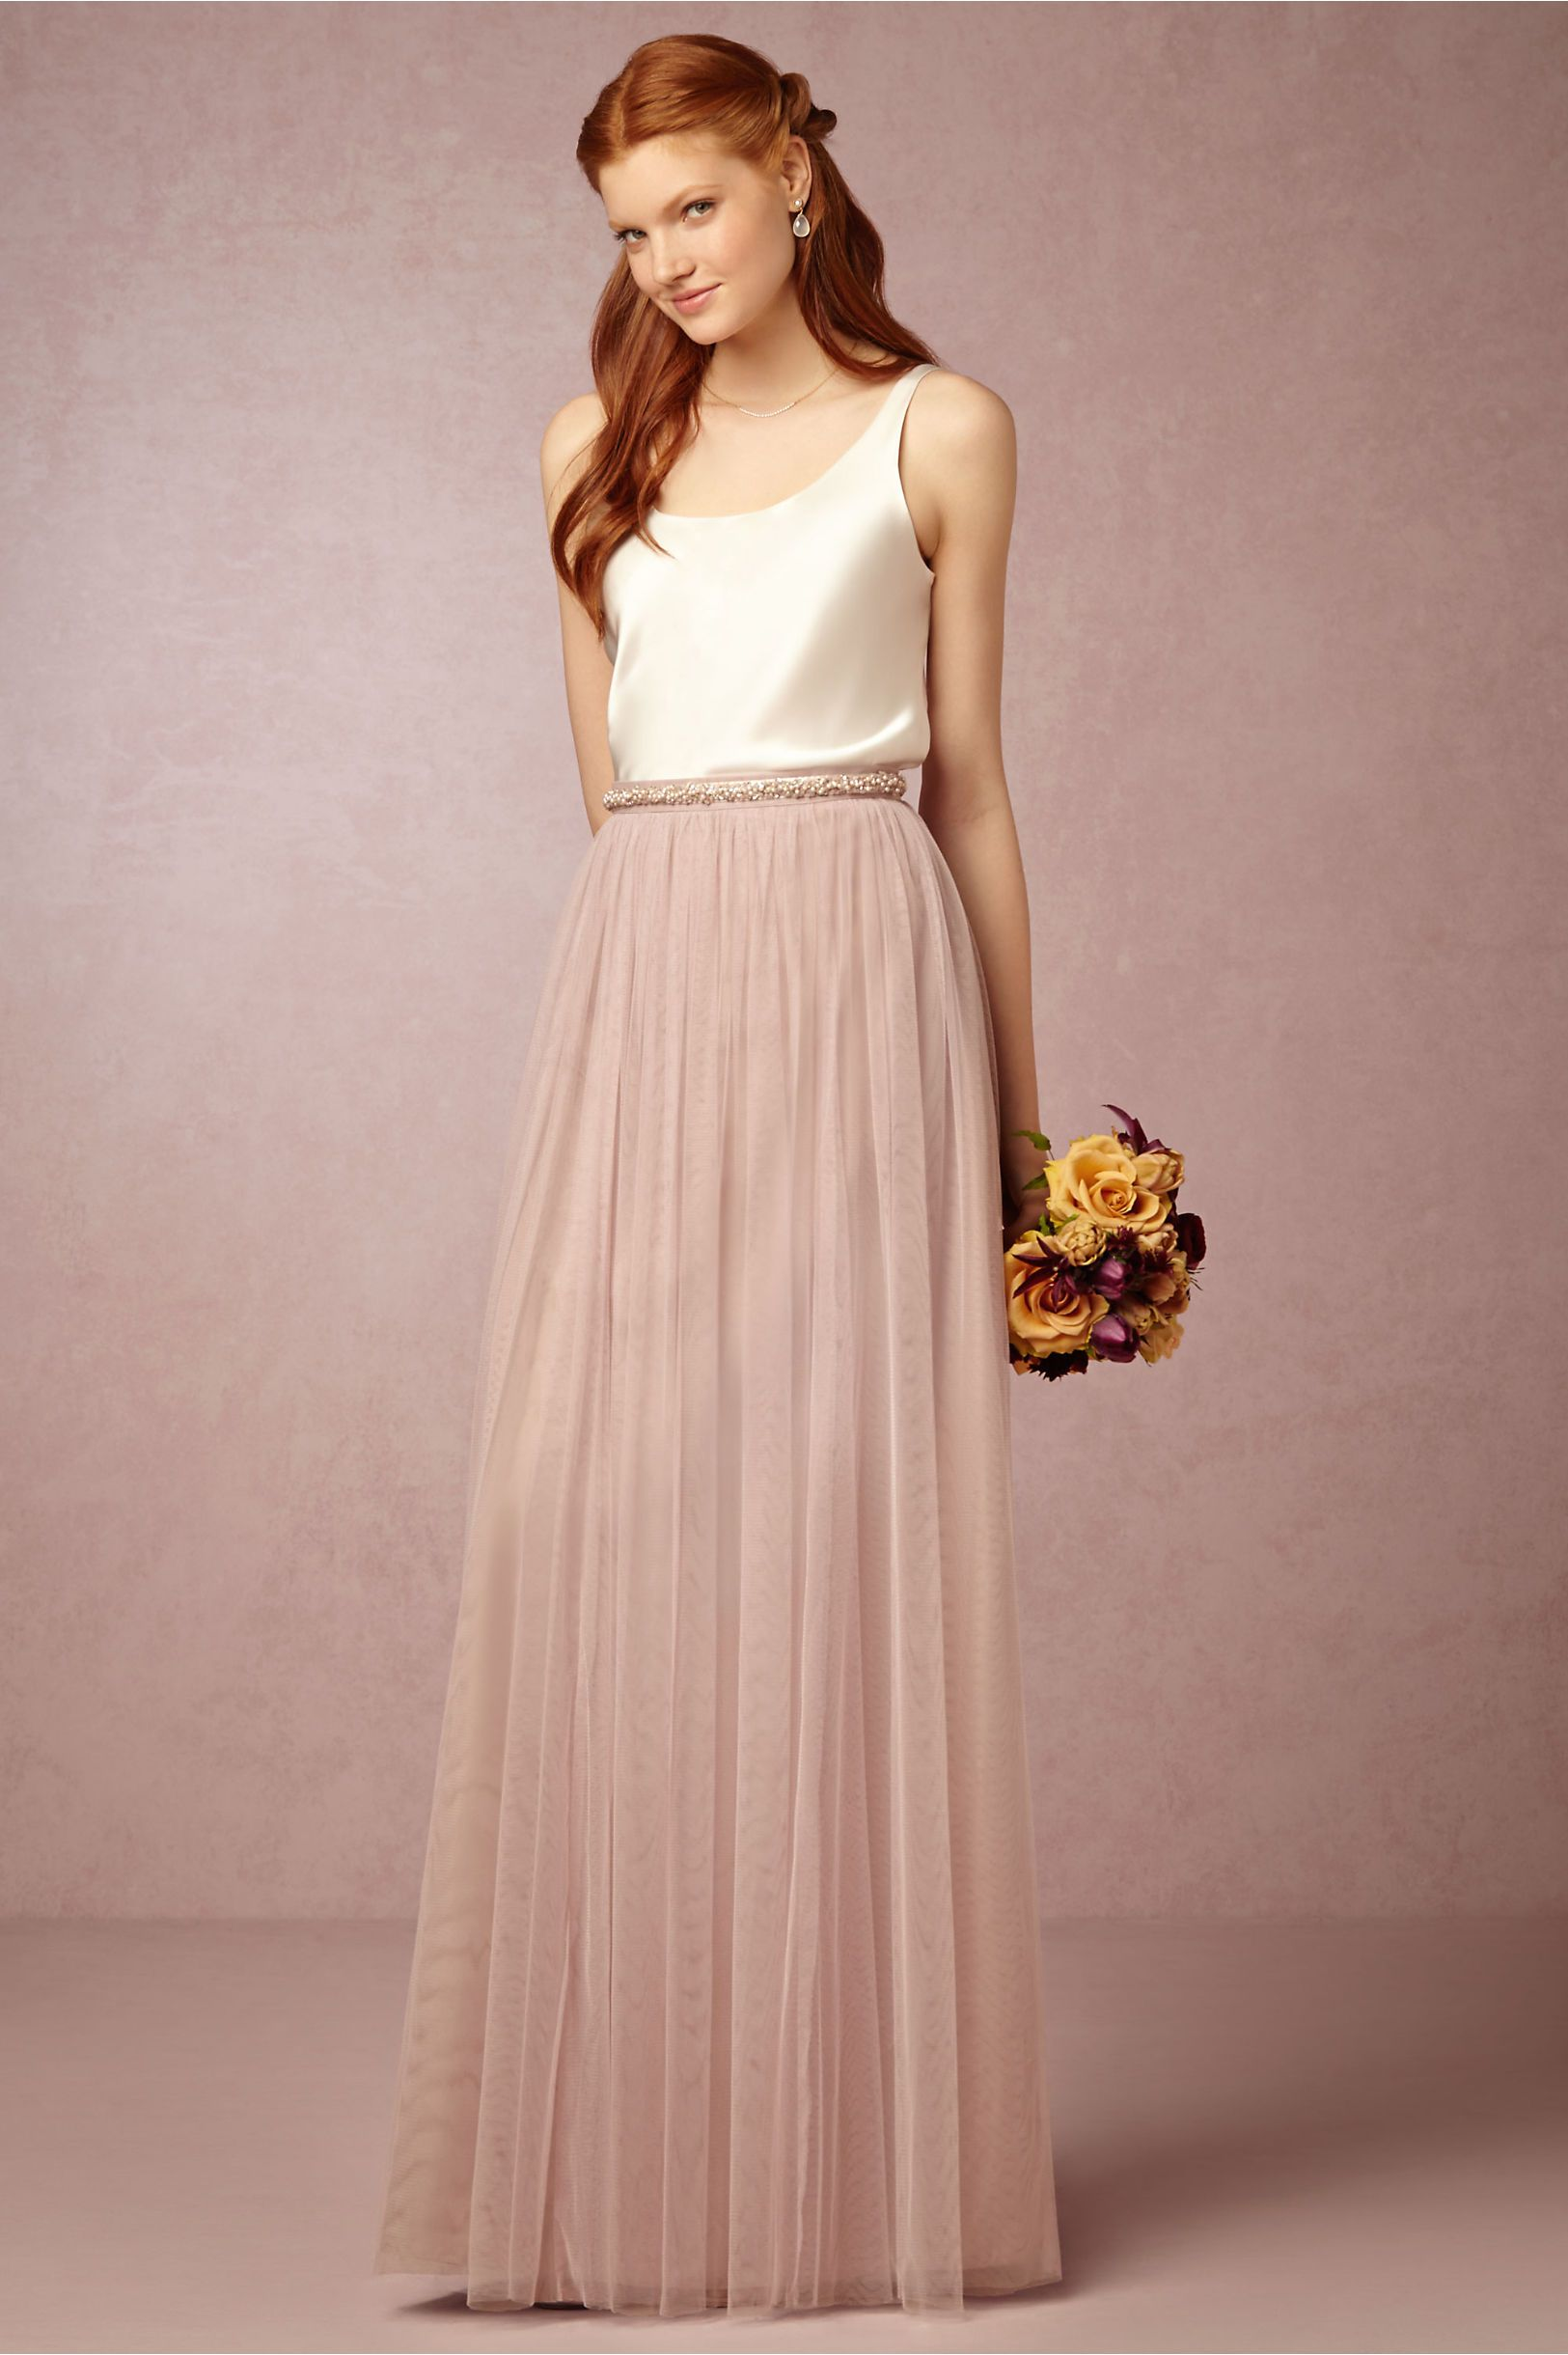 Louise Tulle Skirt from @BHLDN | Rustic Fall Winery Wedding Planning ...